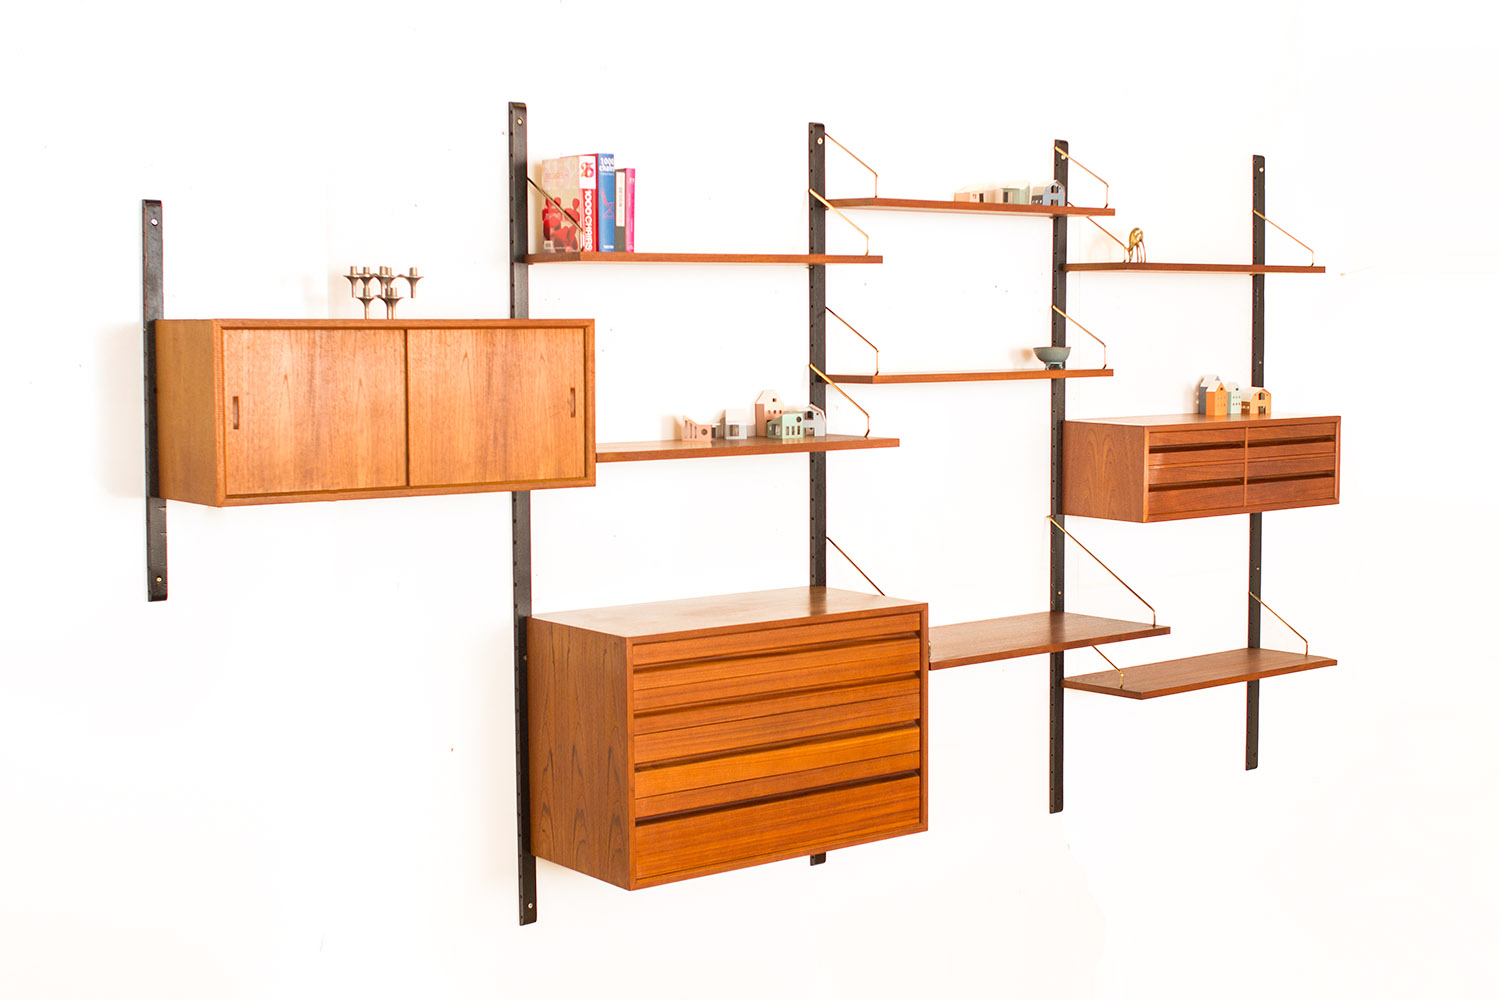 We Have Another Nice Vintage Teak Wall Unit From The Sixties With Three  Cabinets And Seven Shelves In Several Sizes, Designed By Poul Cadovius For  Royal ...